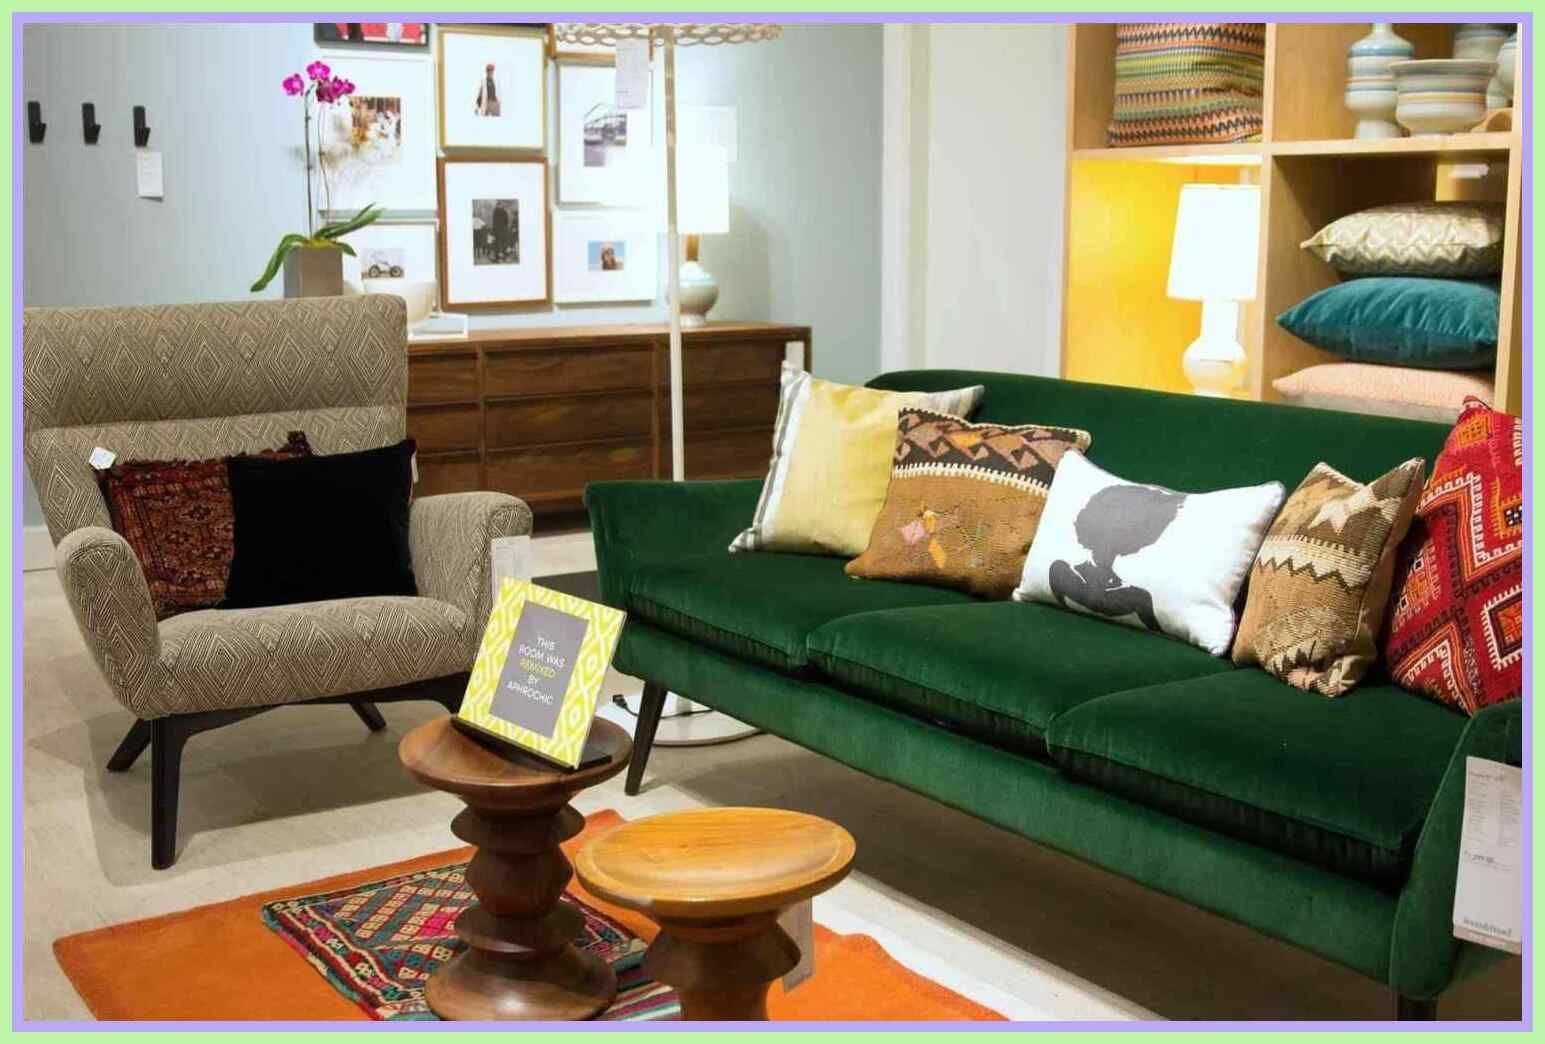 61 Reference Of Living Room Ideas Green Couch Living Room Ideas Olive Green Green Sofa Green Sofa Living